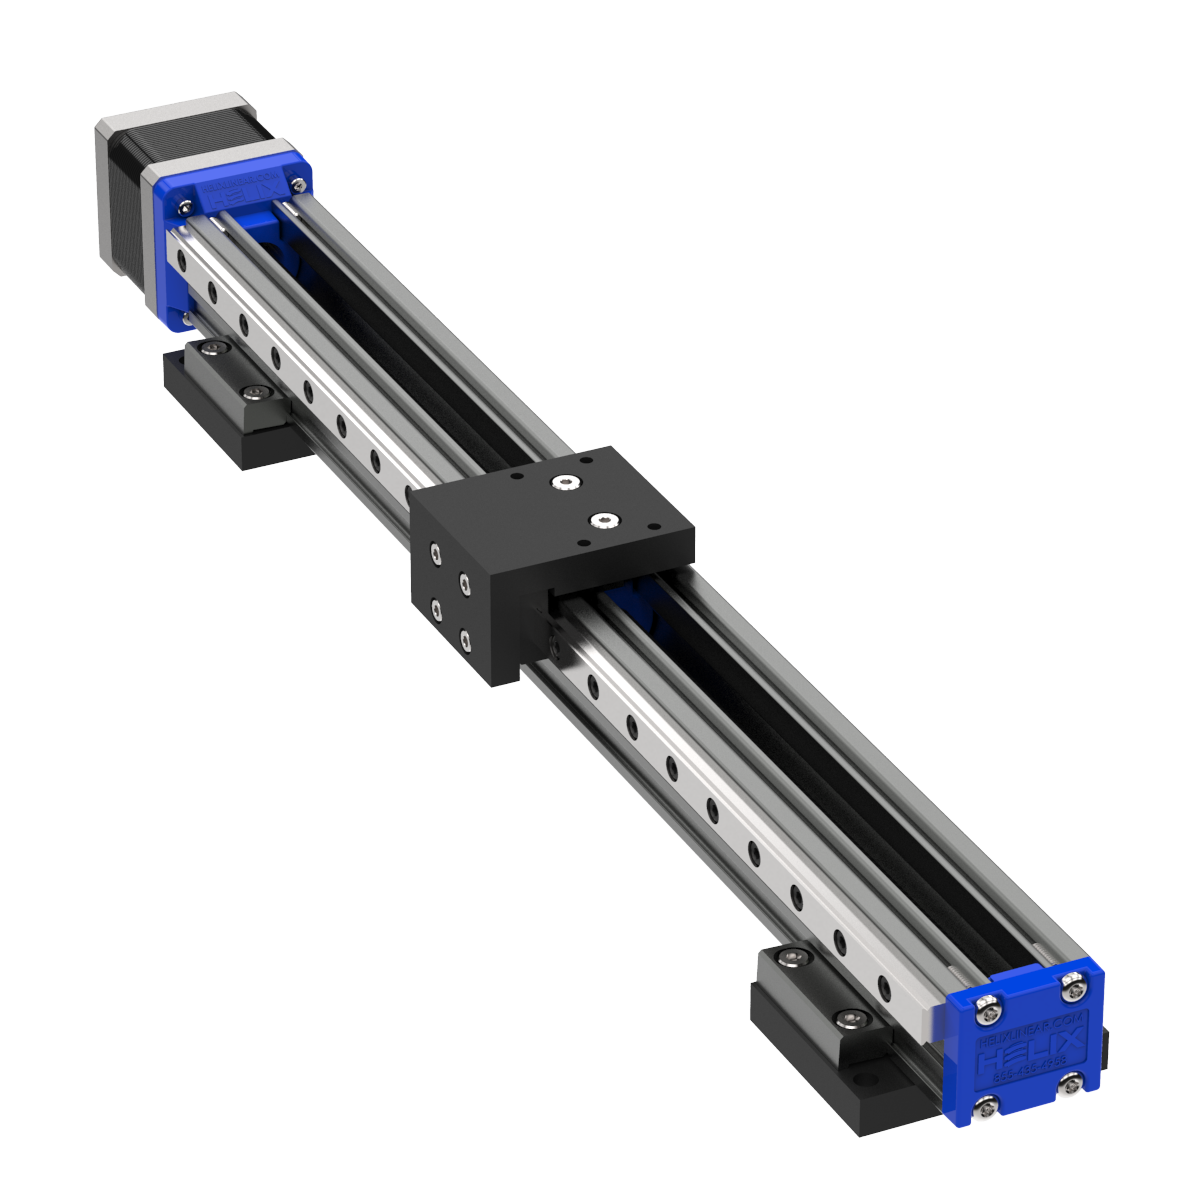 MPA Linear Actuators